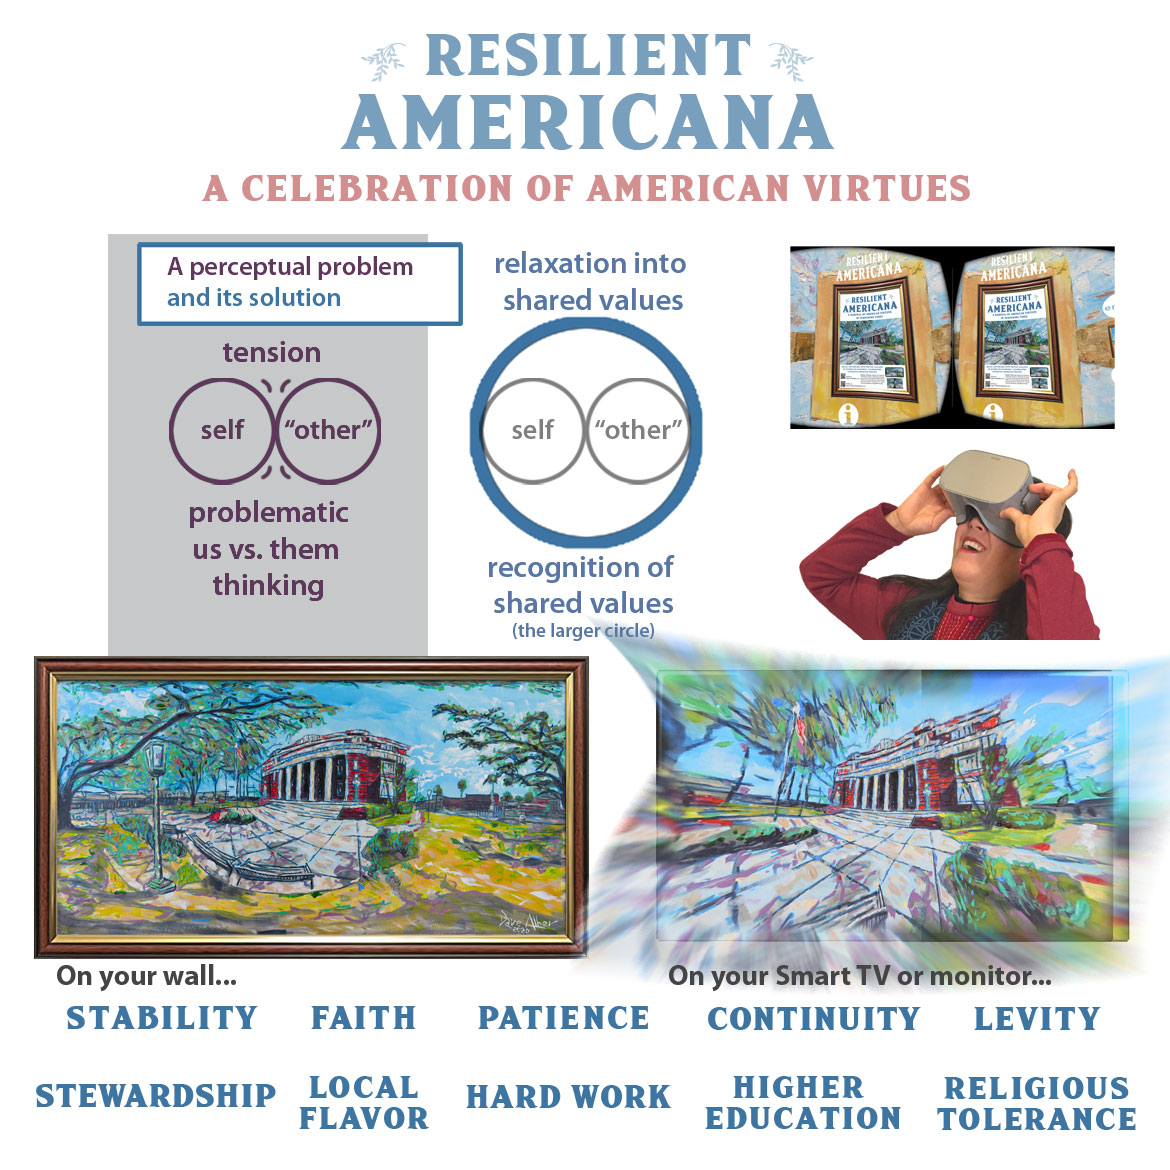 Resilient Americana: Virtual Reality Painting Gallery Focuses on Unity Sustained by Shared Values